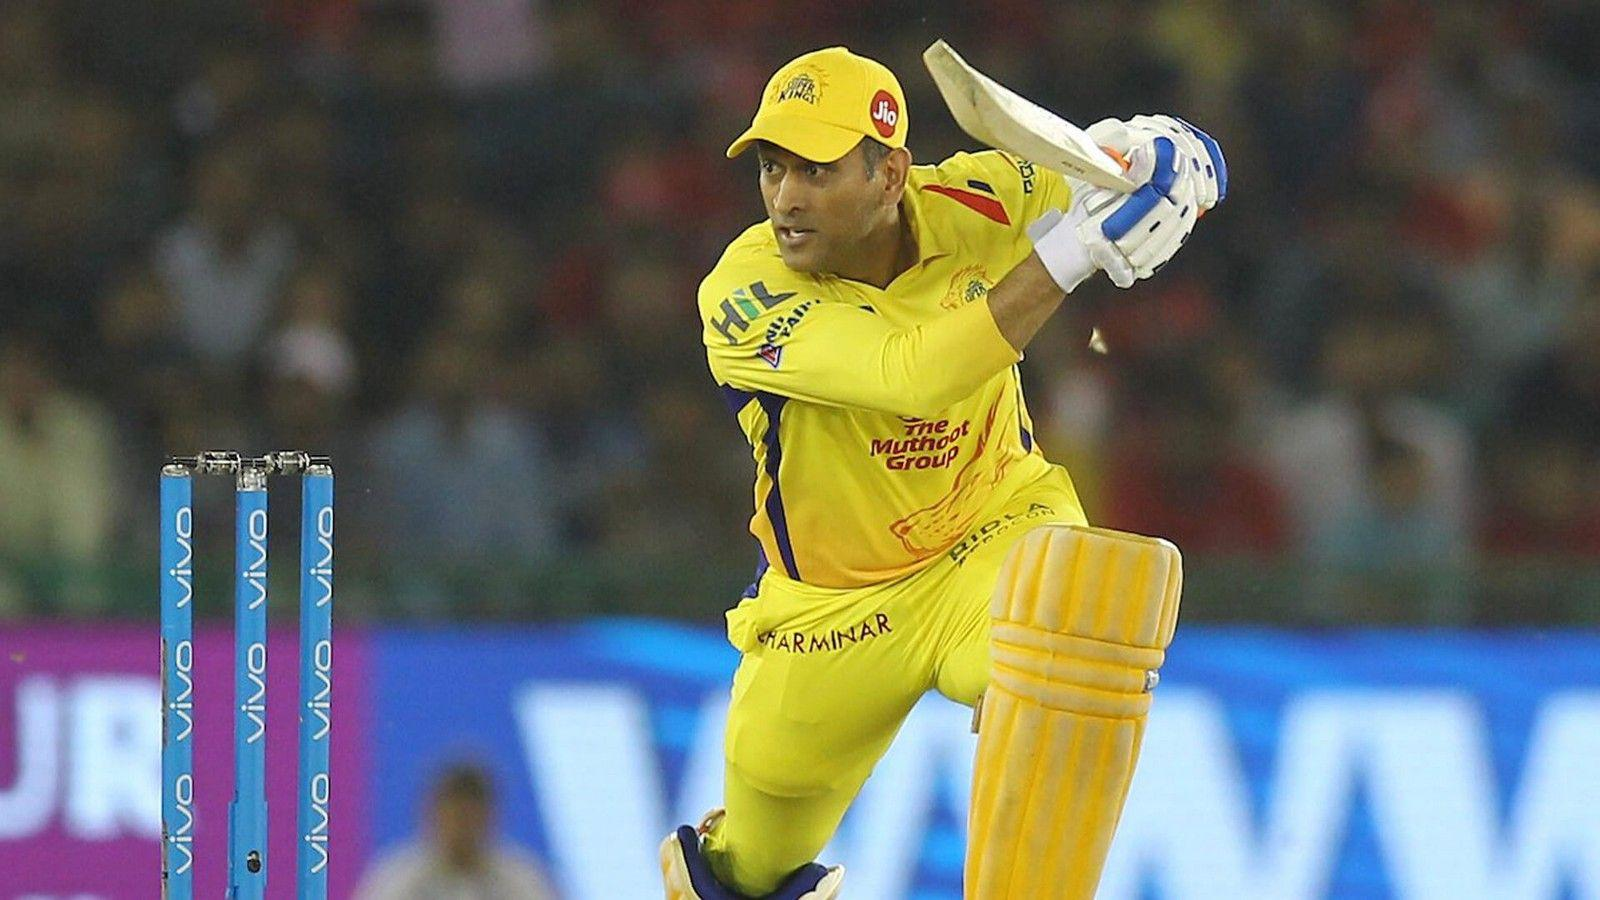 Chennai Super Kings Wallpapers - Wallpaper Cave